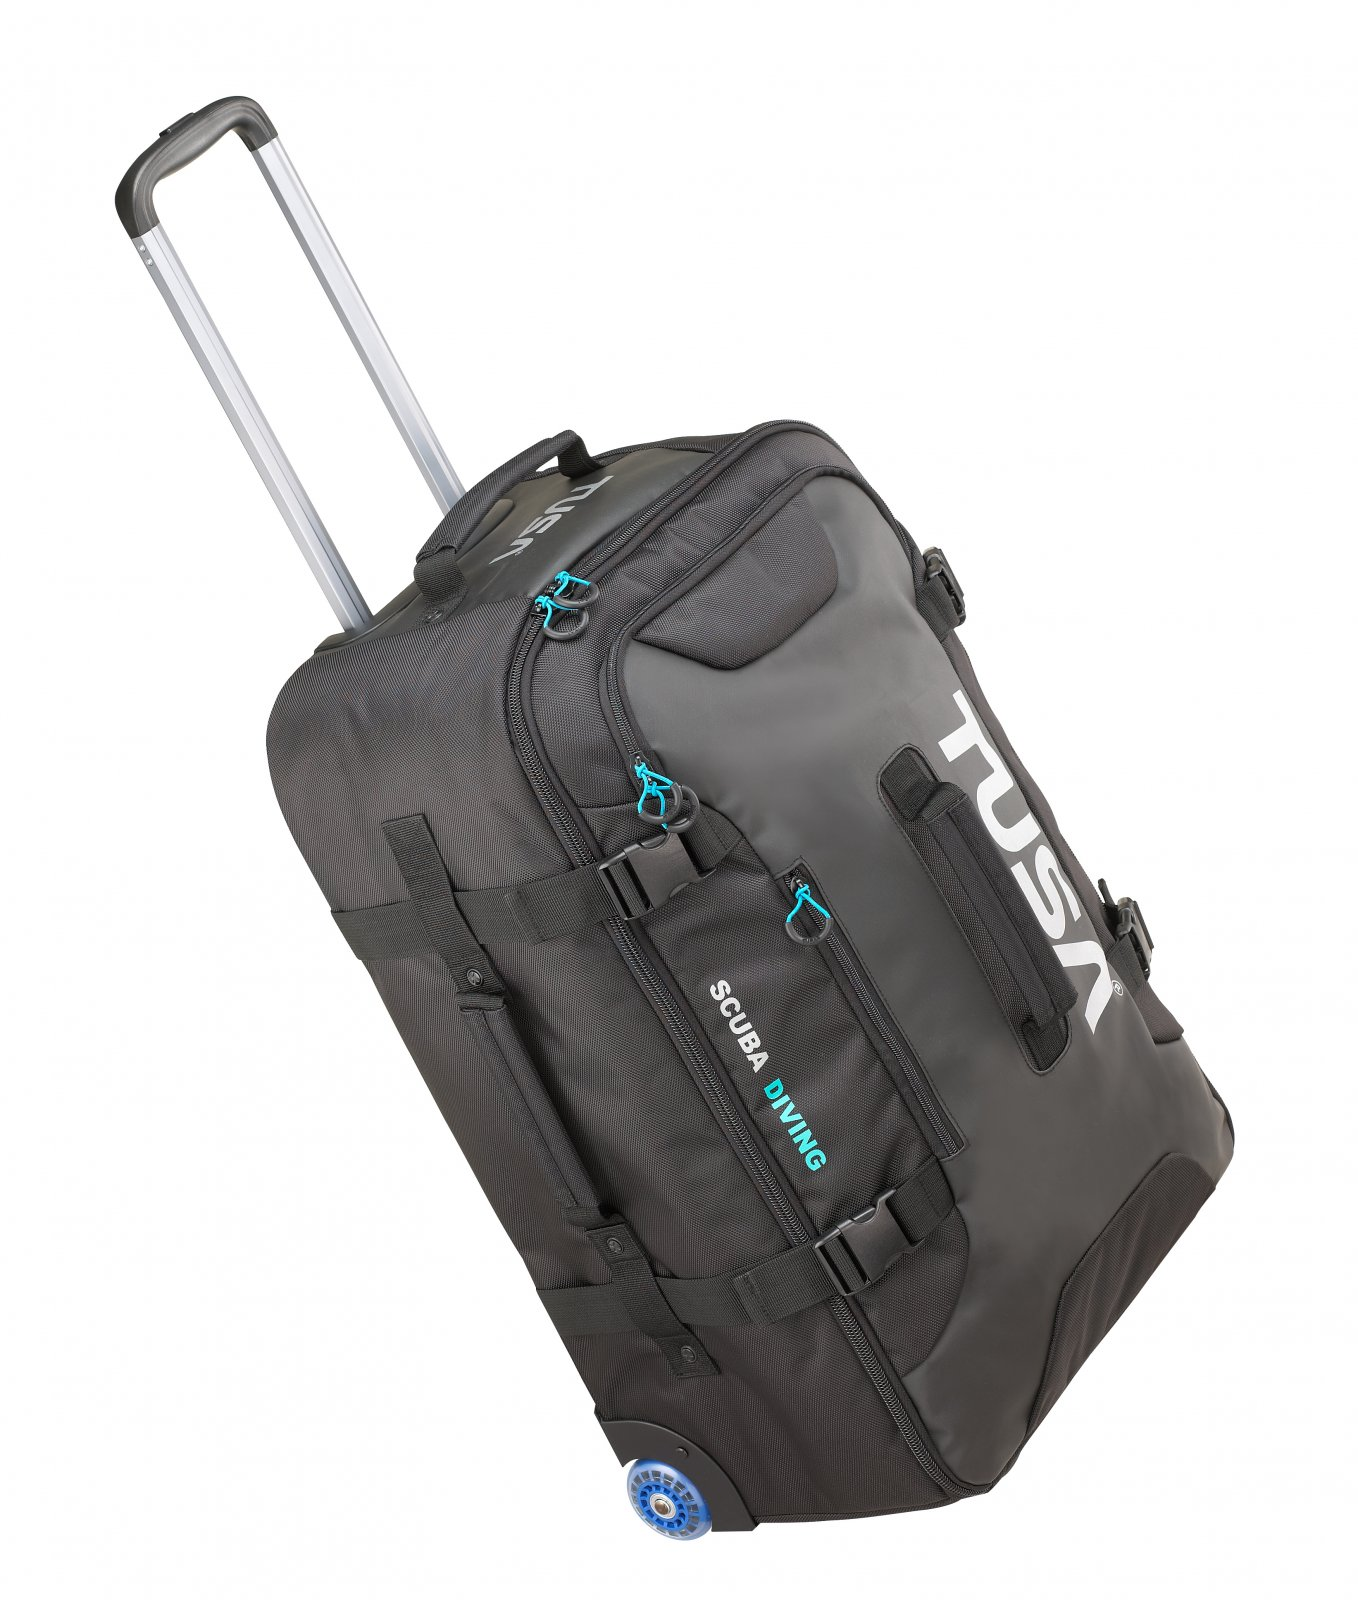 TUSA Roller Bag - Medium